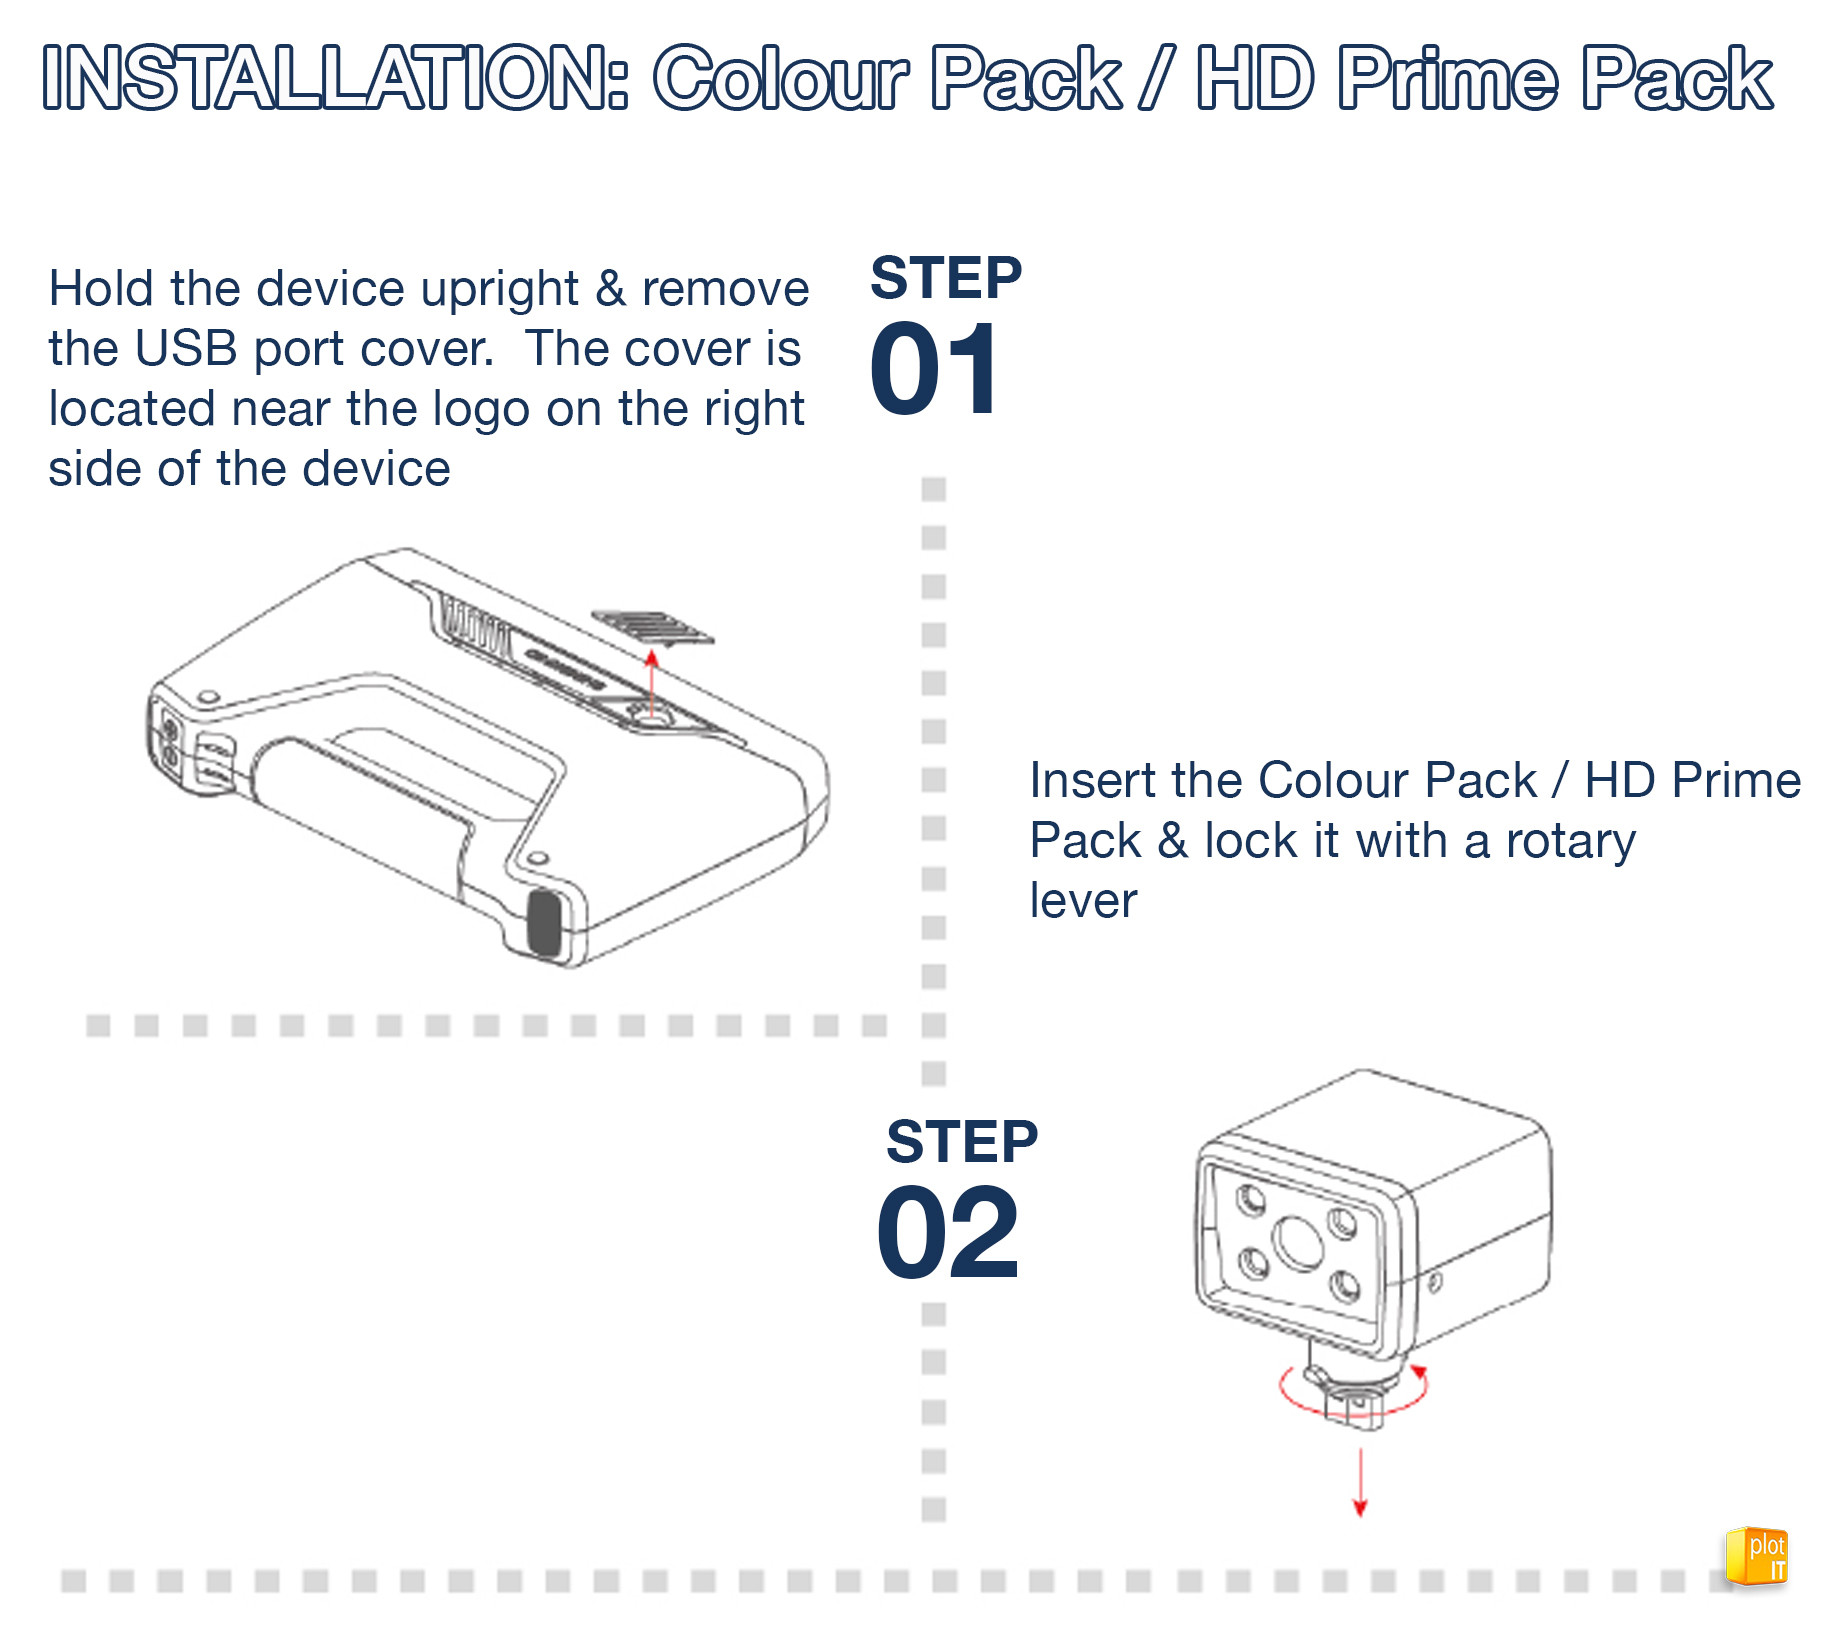 Einscan Colour Pack / HD Prime Installation instructions